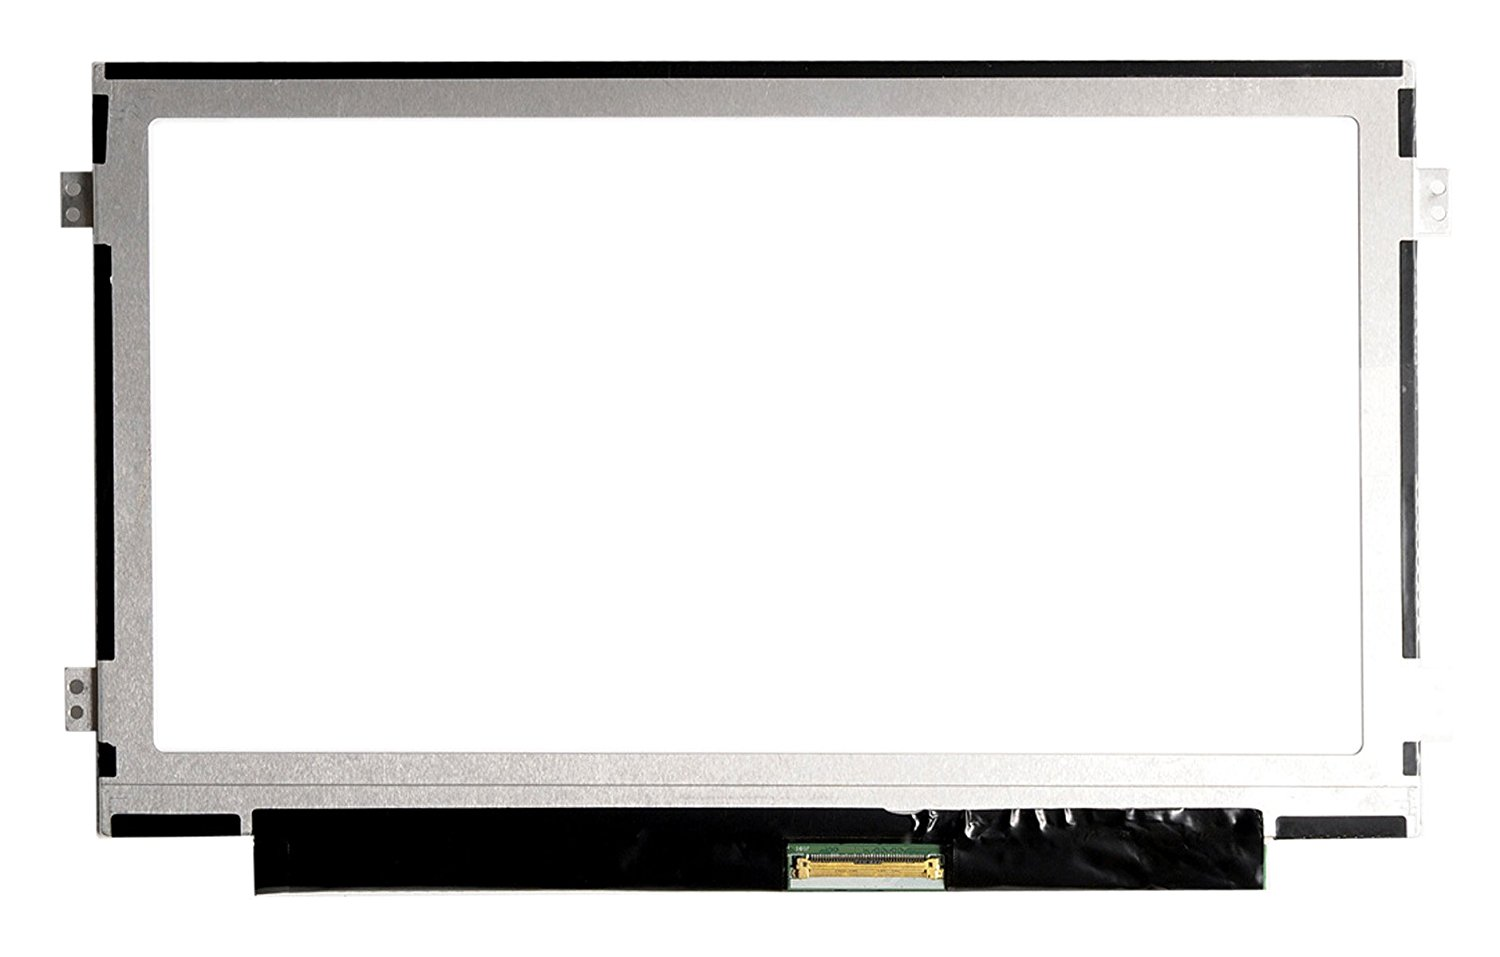 N101L6-LOD REV C1/C2 NEW CMI 10.1 WSVGA Slim LED LCD Screen N1O1L6-LOD REV.C2 ...